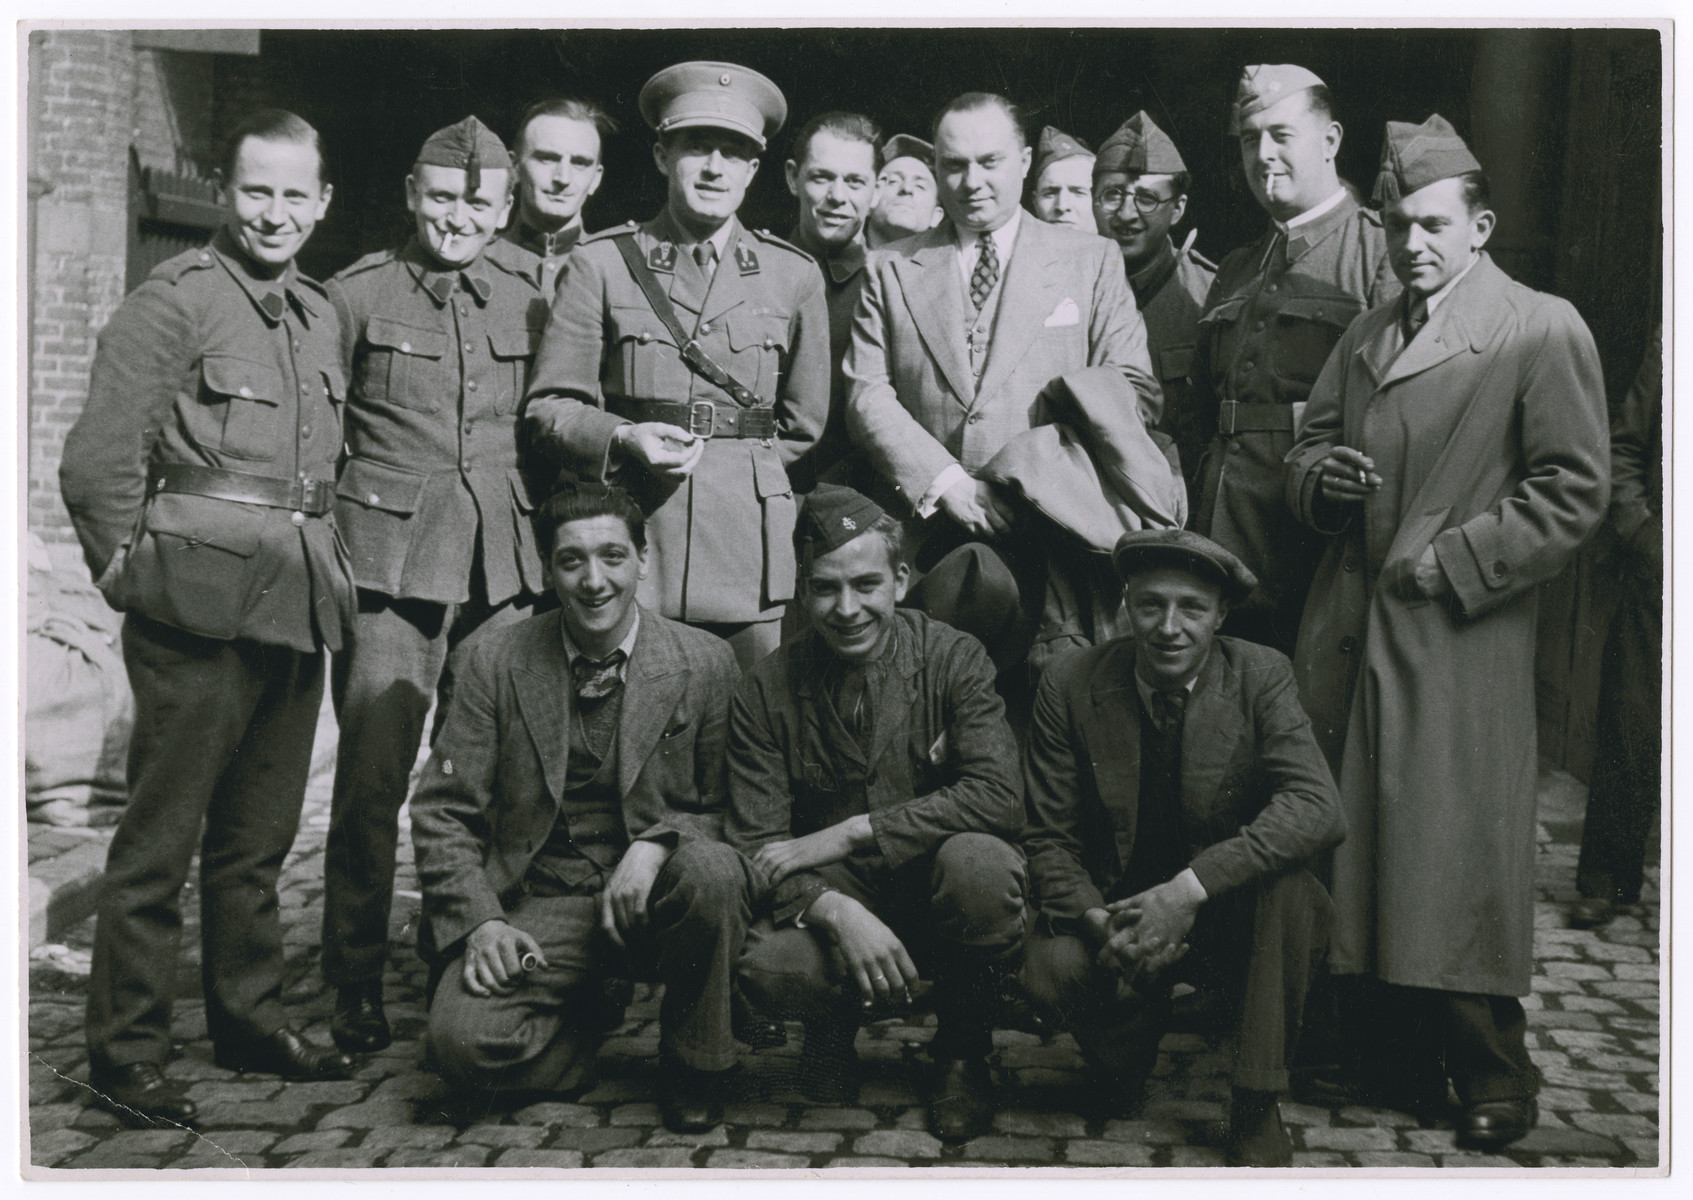 Group portrait of Belgian soldiers and civilians.  Leopold Guttman is pictured standing, third from the right.